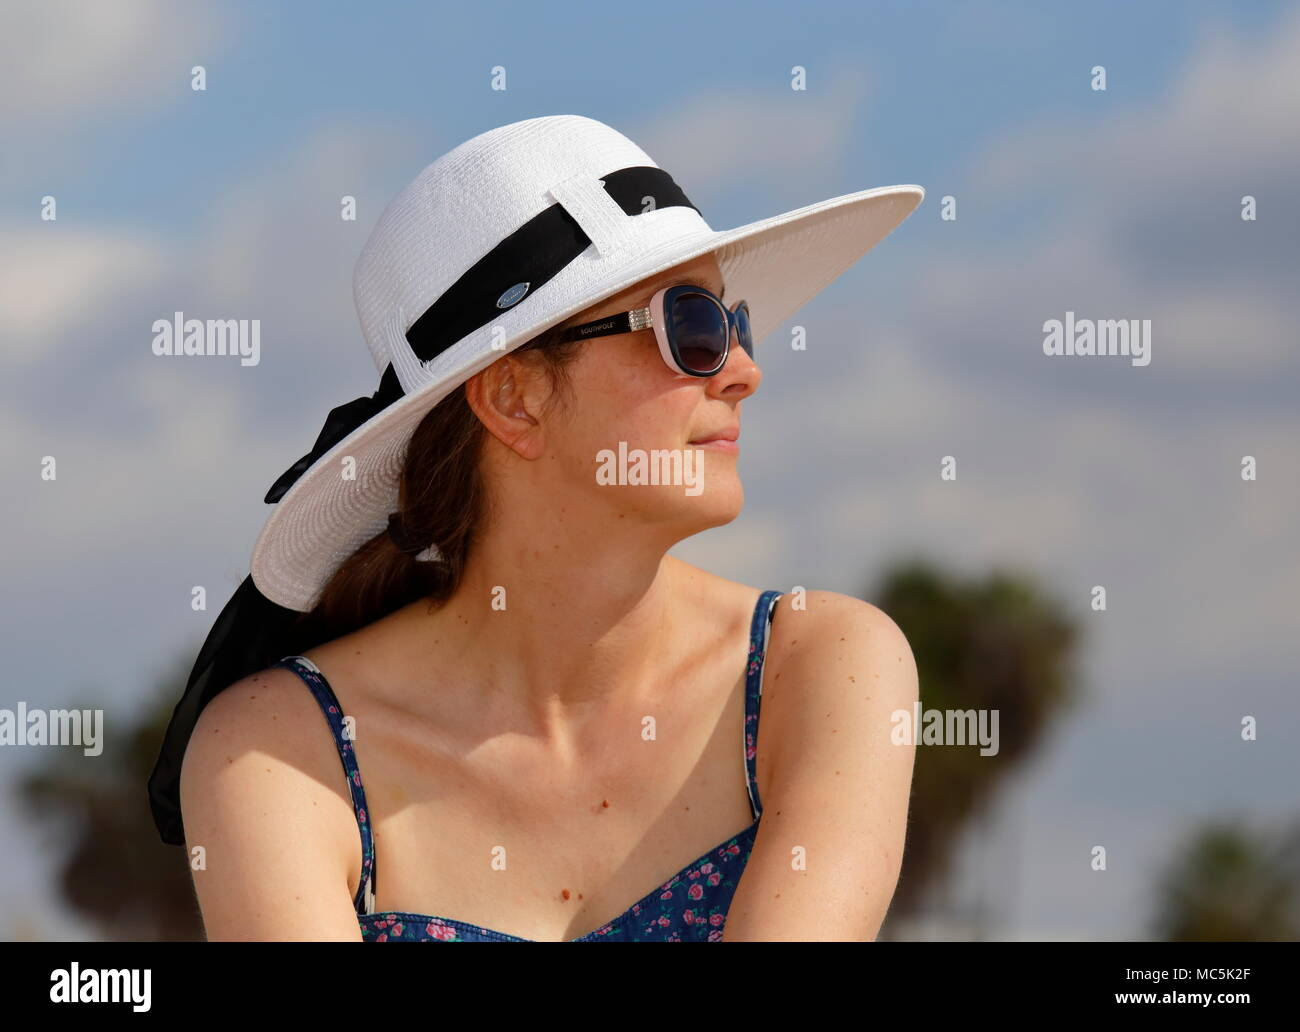 Profile view of a young woman in white sunhat, sunglasses, and blue sundress. Blurred trees, blue sky and clouds in the background - Stock Image